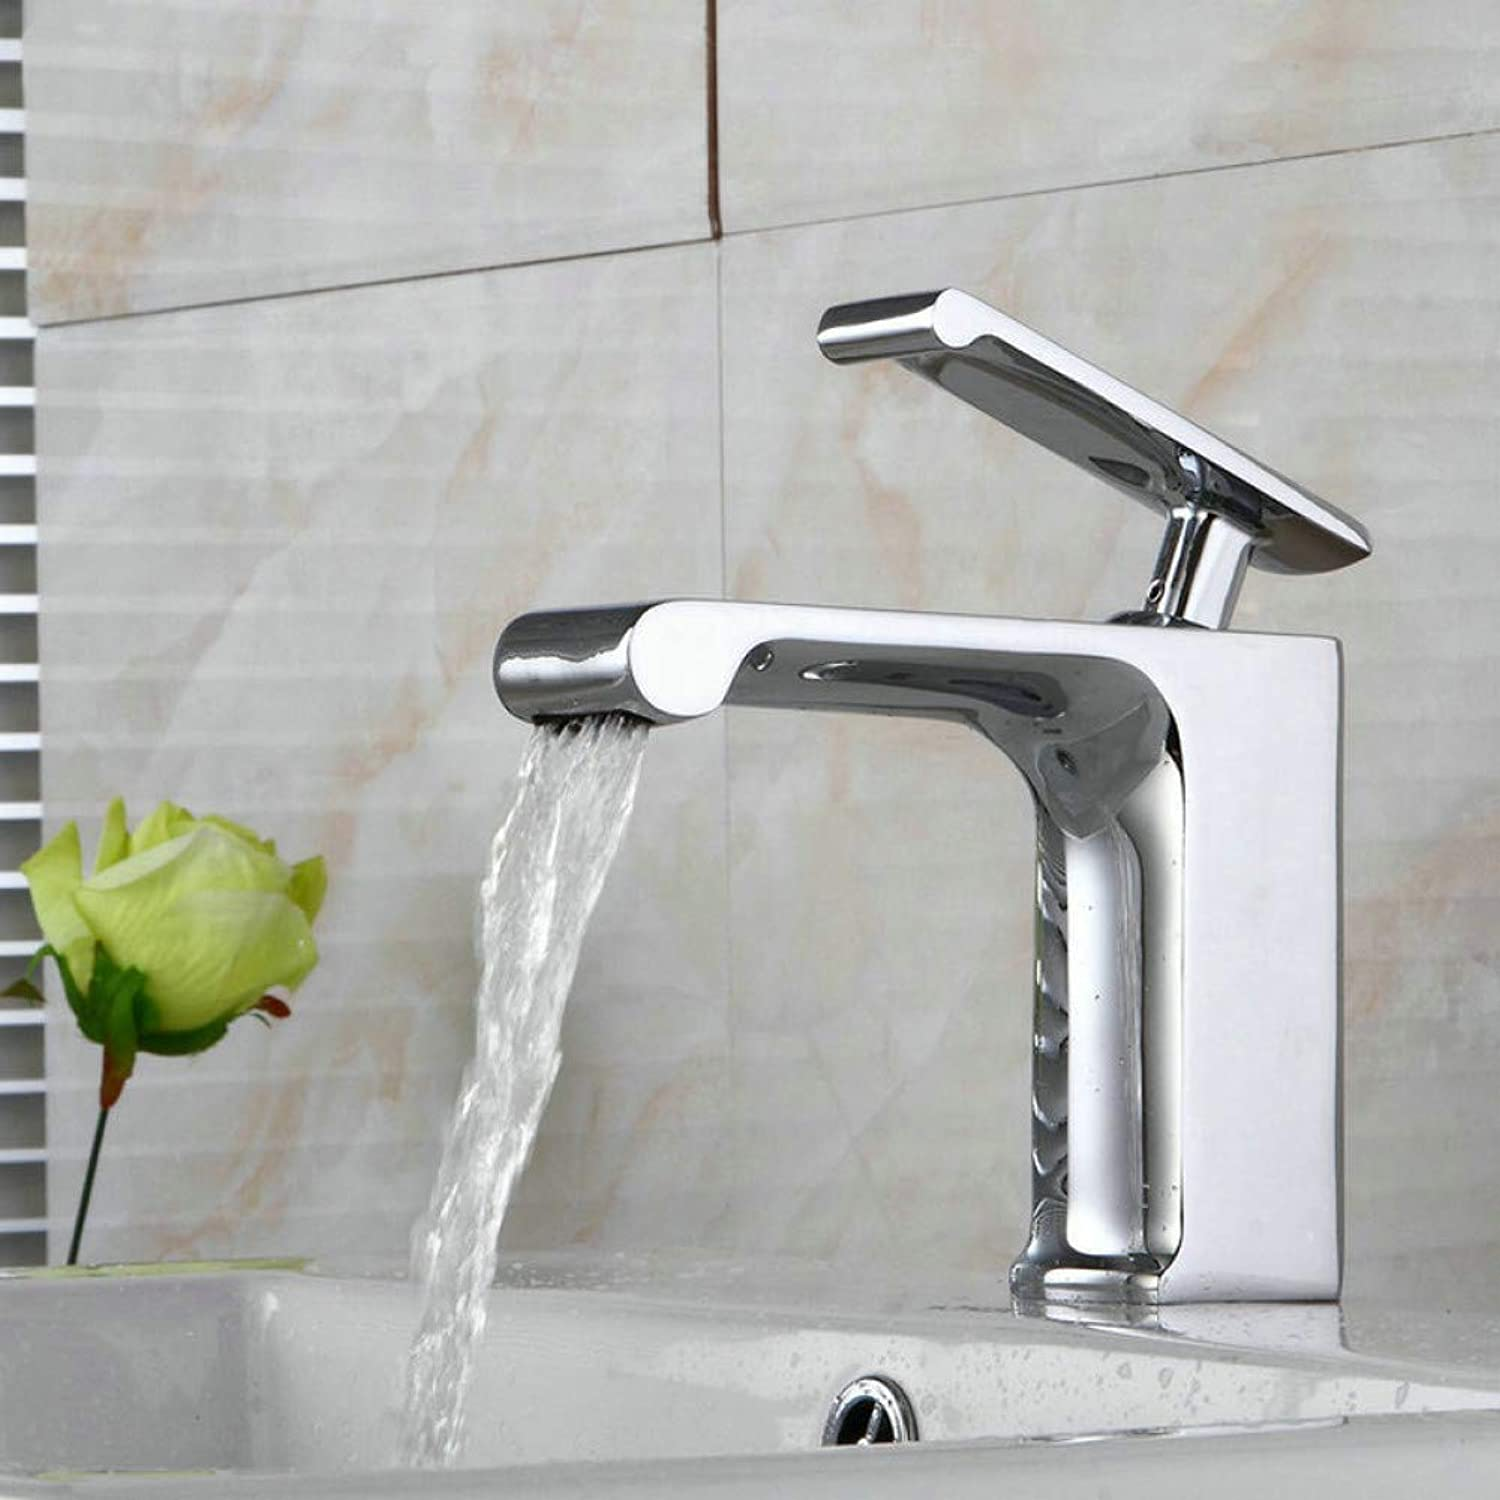 YHSGY Kitchen Taps Basin Faucets Chrome Brass Faucet Square Bathroom Sink Faucet Single Handle Deck Mounted Toilet Hot and Cold Mixer Water Tap